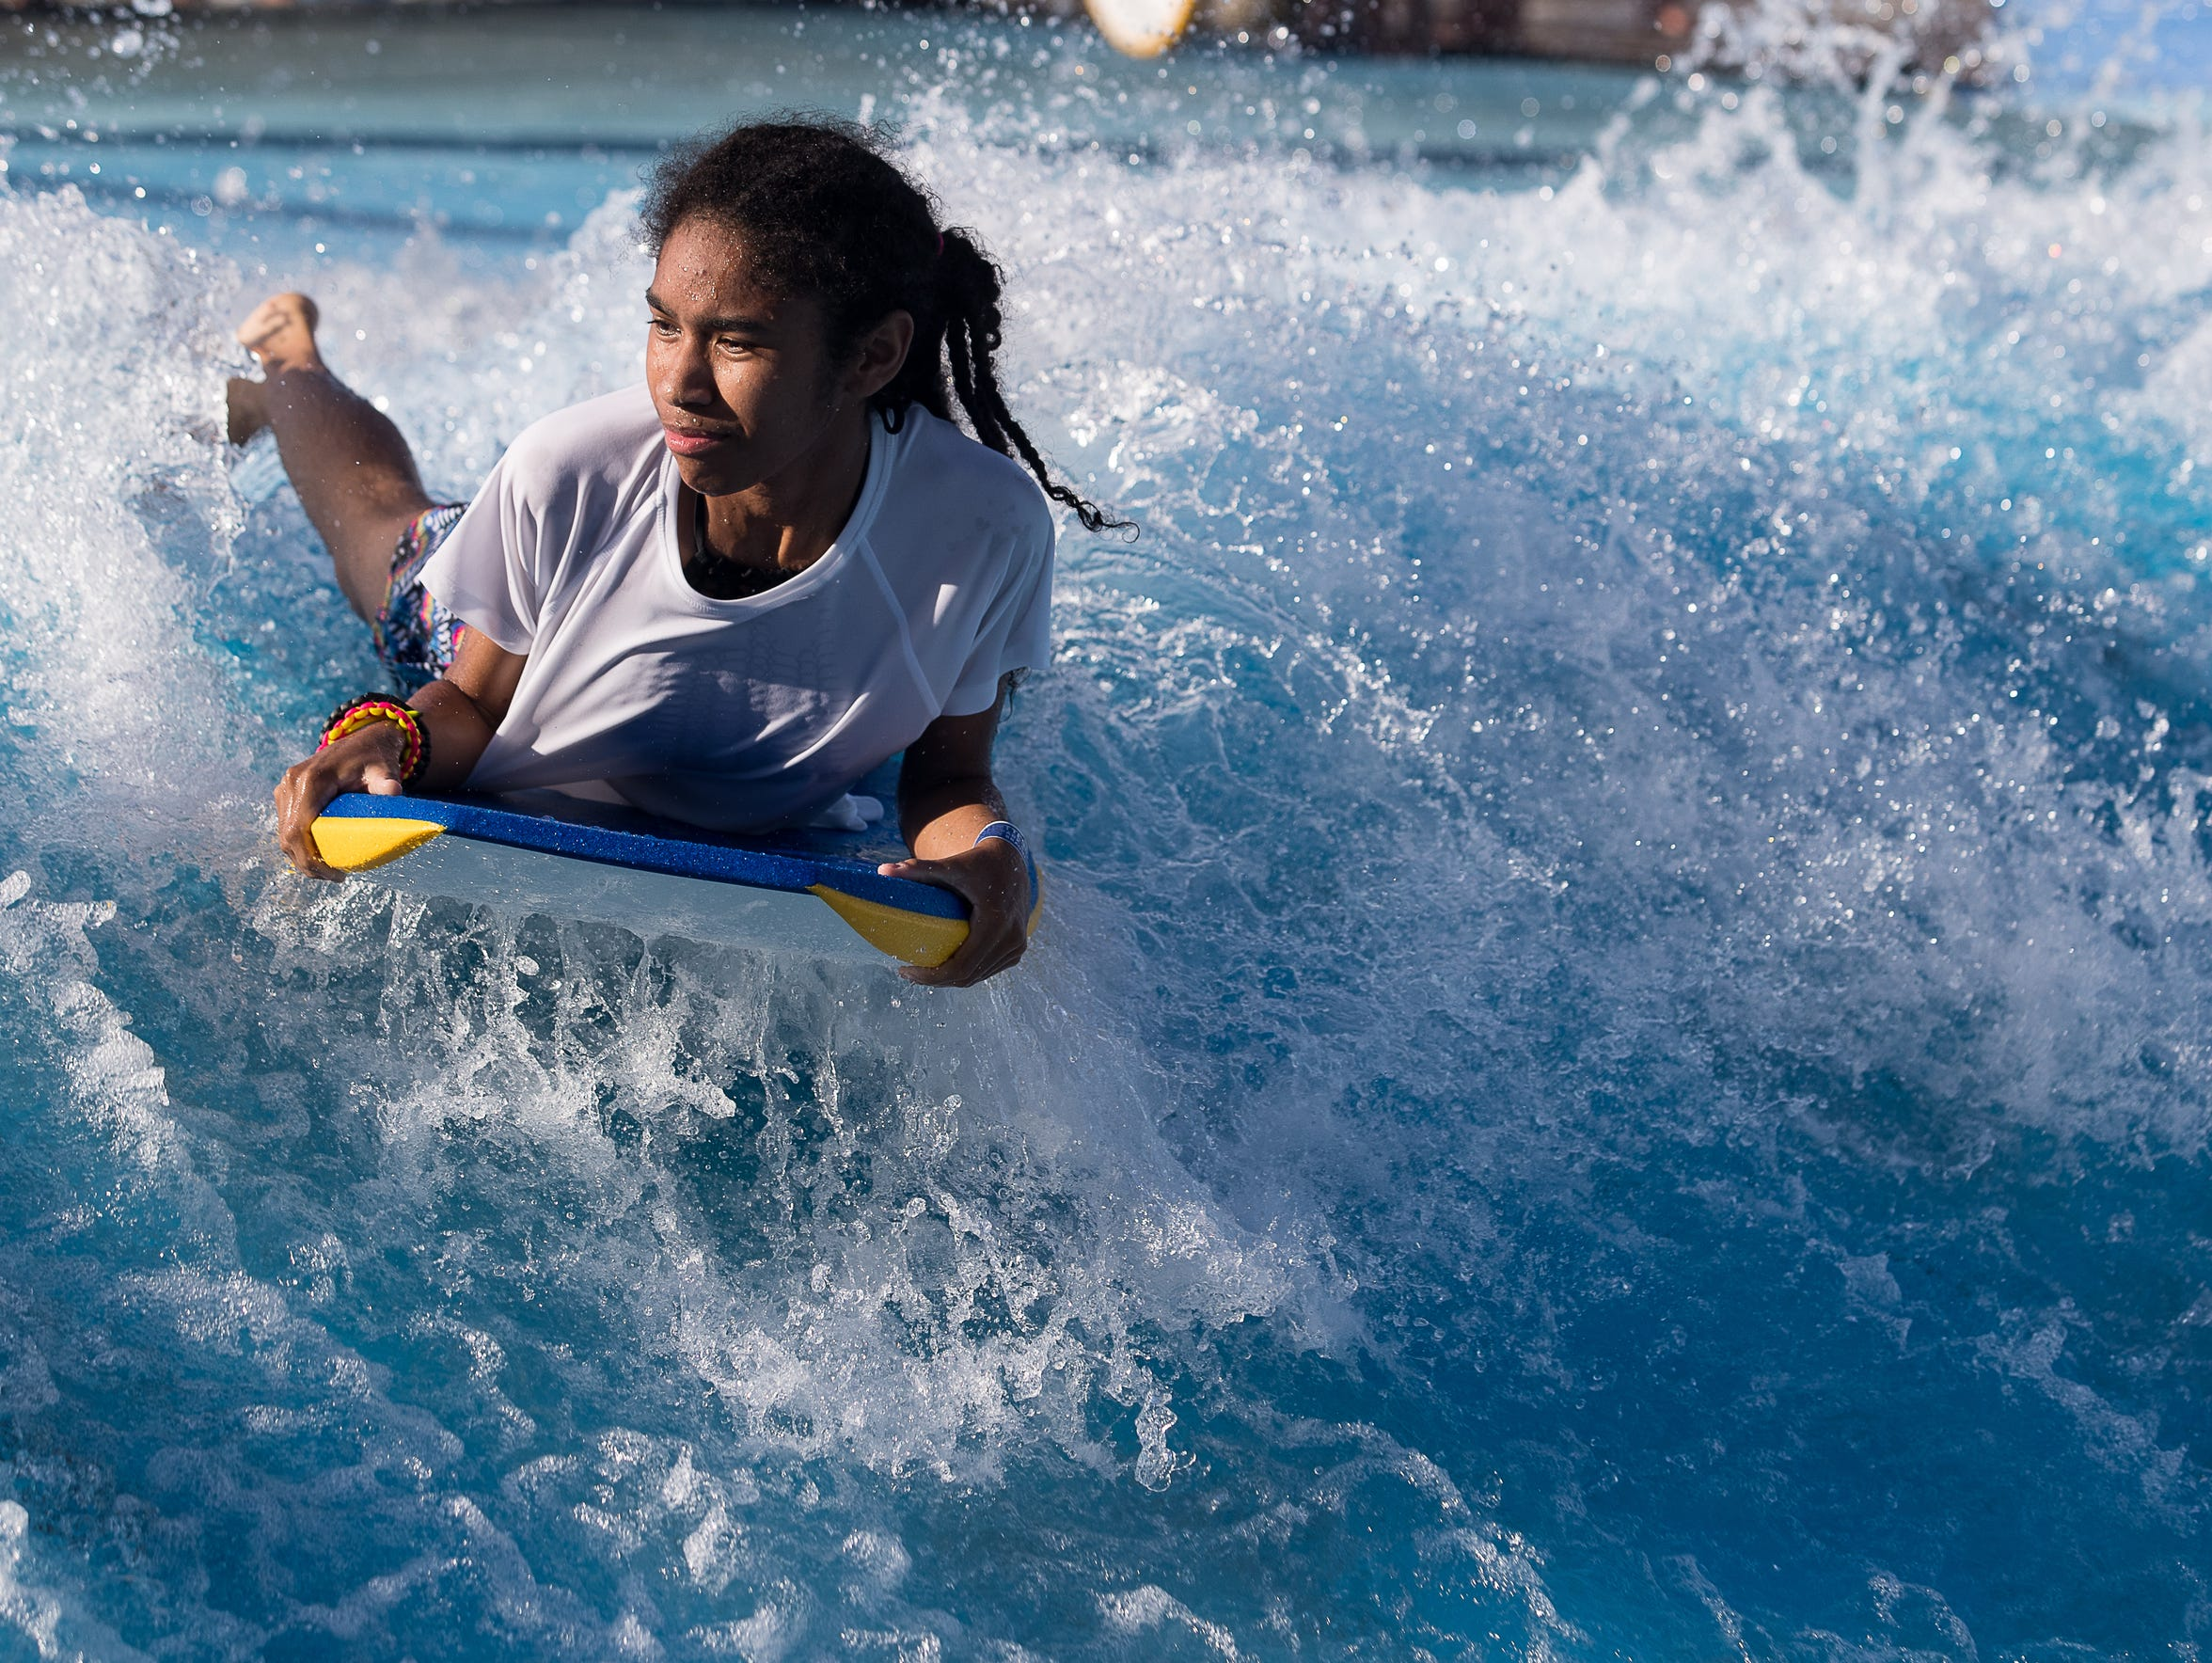 Elle Garcia, 14-years-old learns to surf at Schlitterbahn